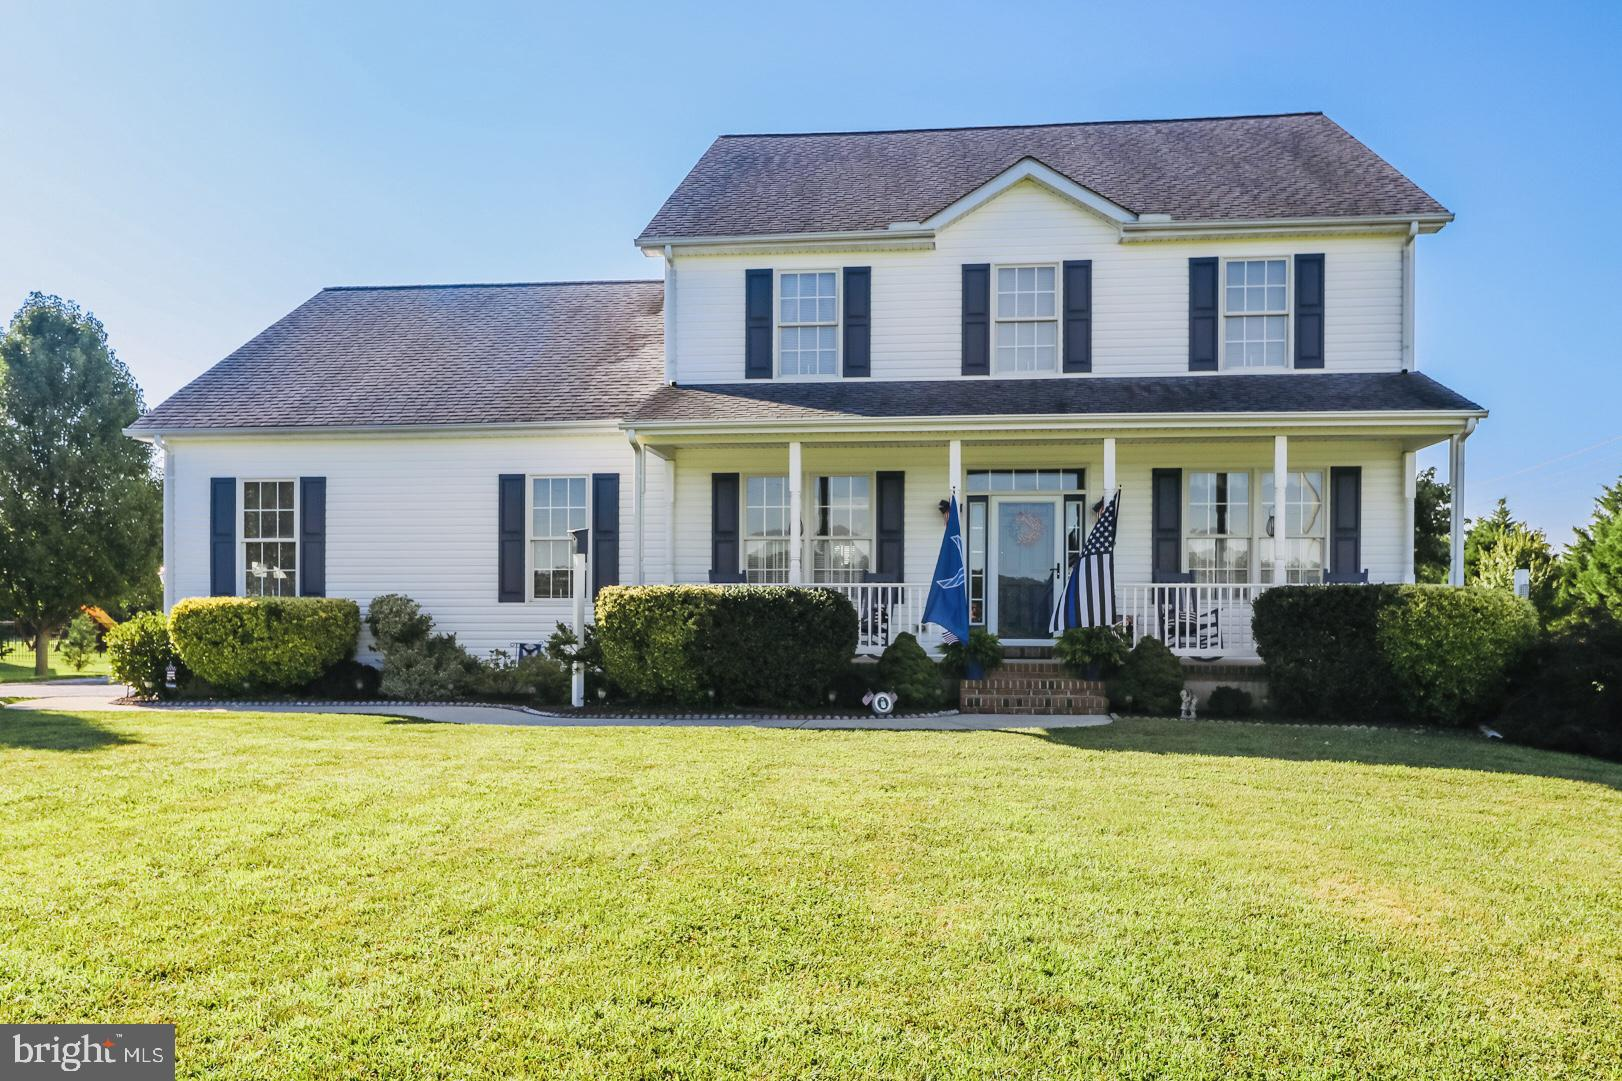 2412 MIDSTATE ROAD, FELTON, DE 19943